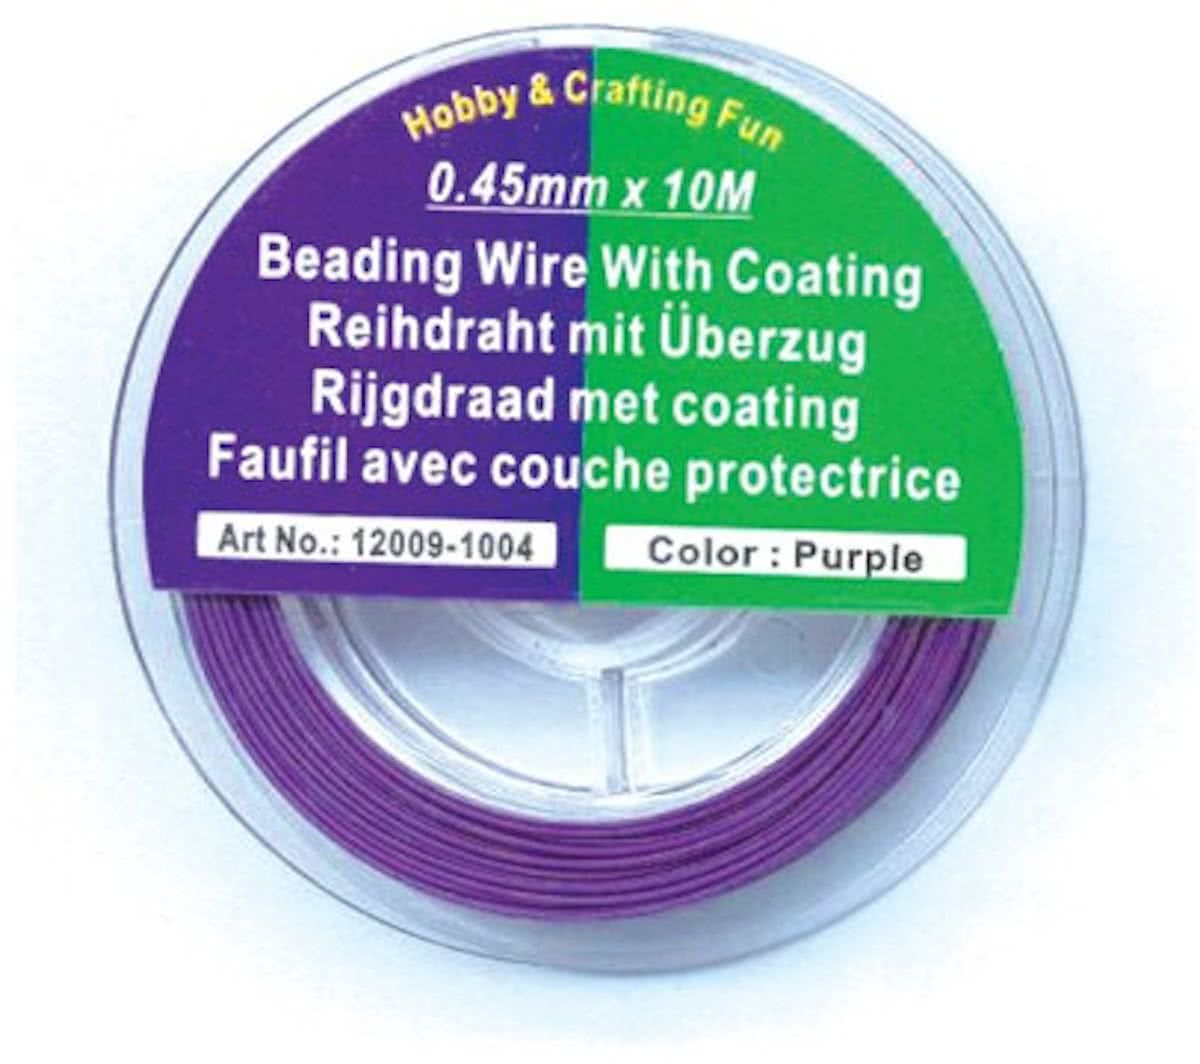 Rijgdraad met Coating - Purple - 0,45mm x 10meter. 2 ROLLETJES.